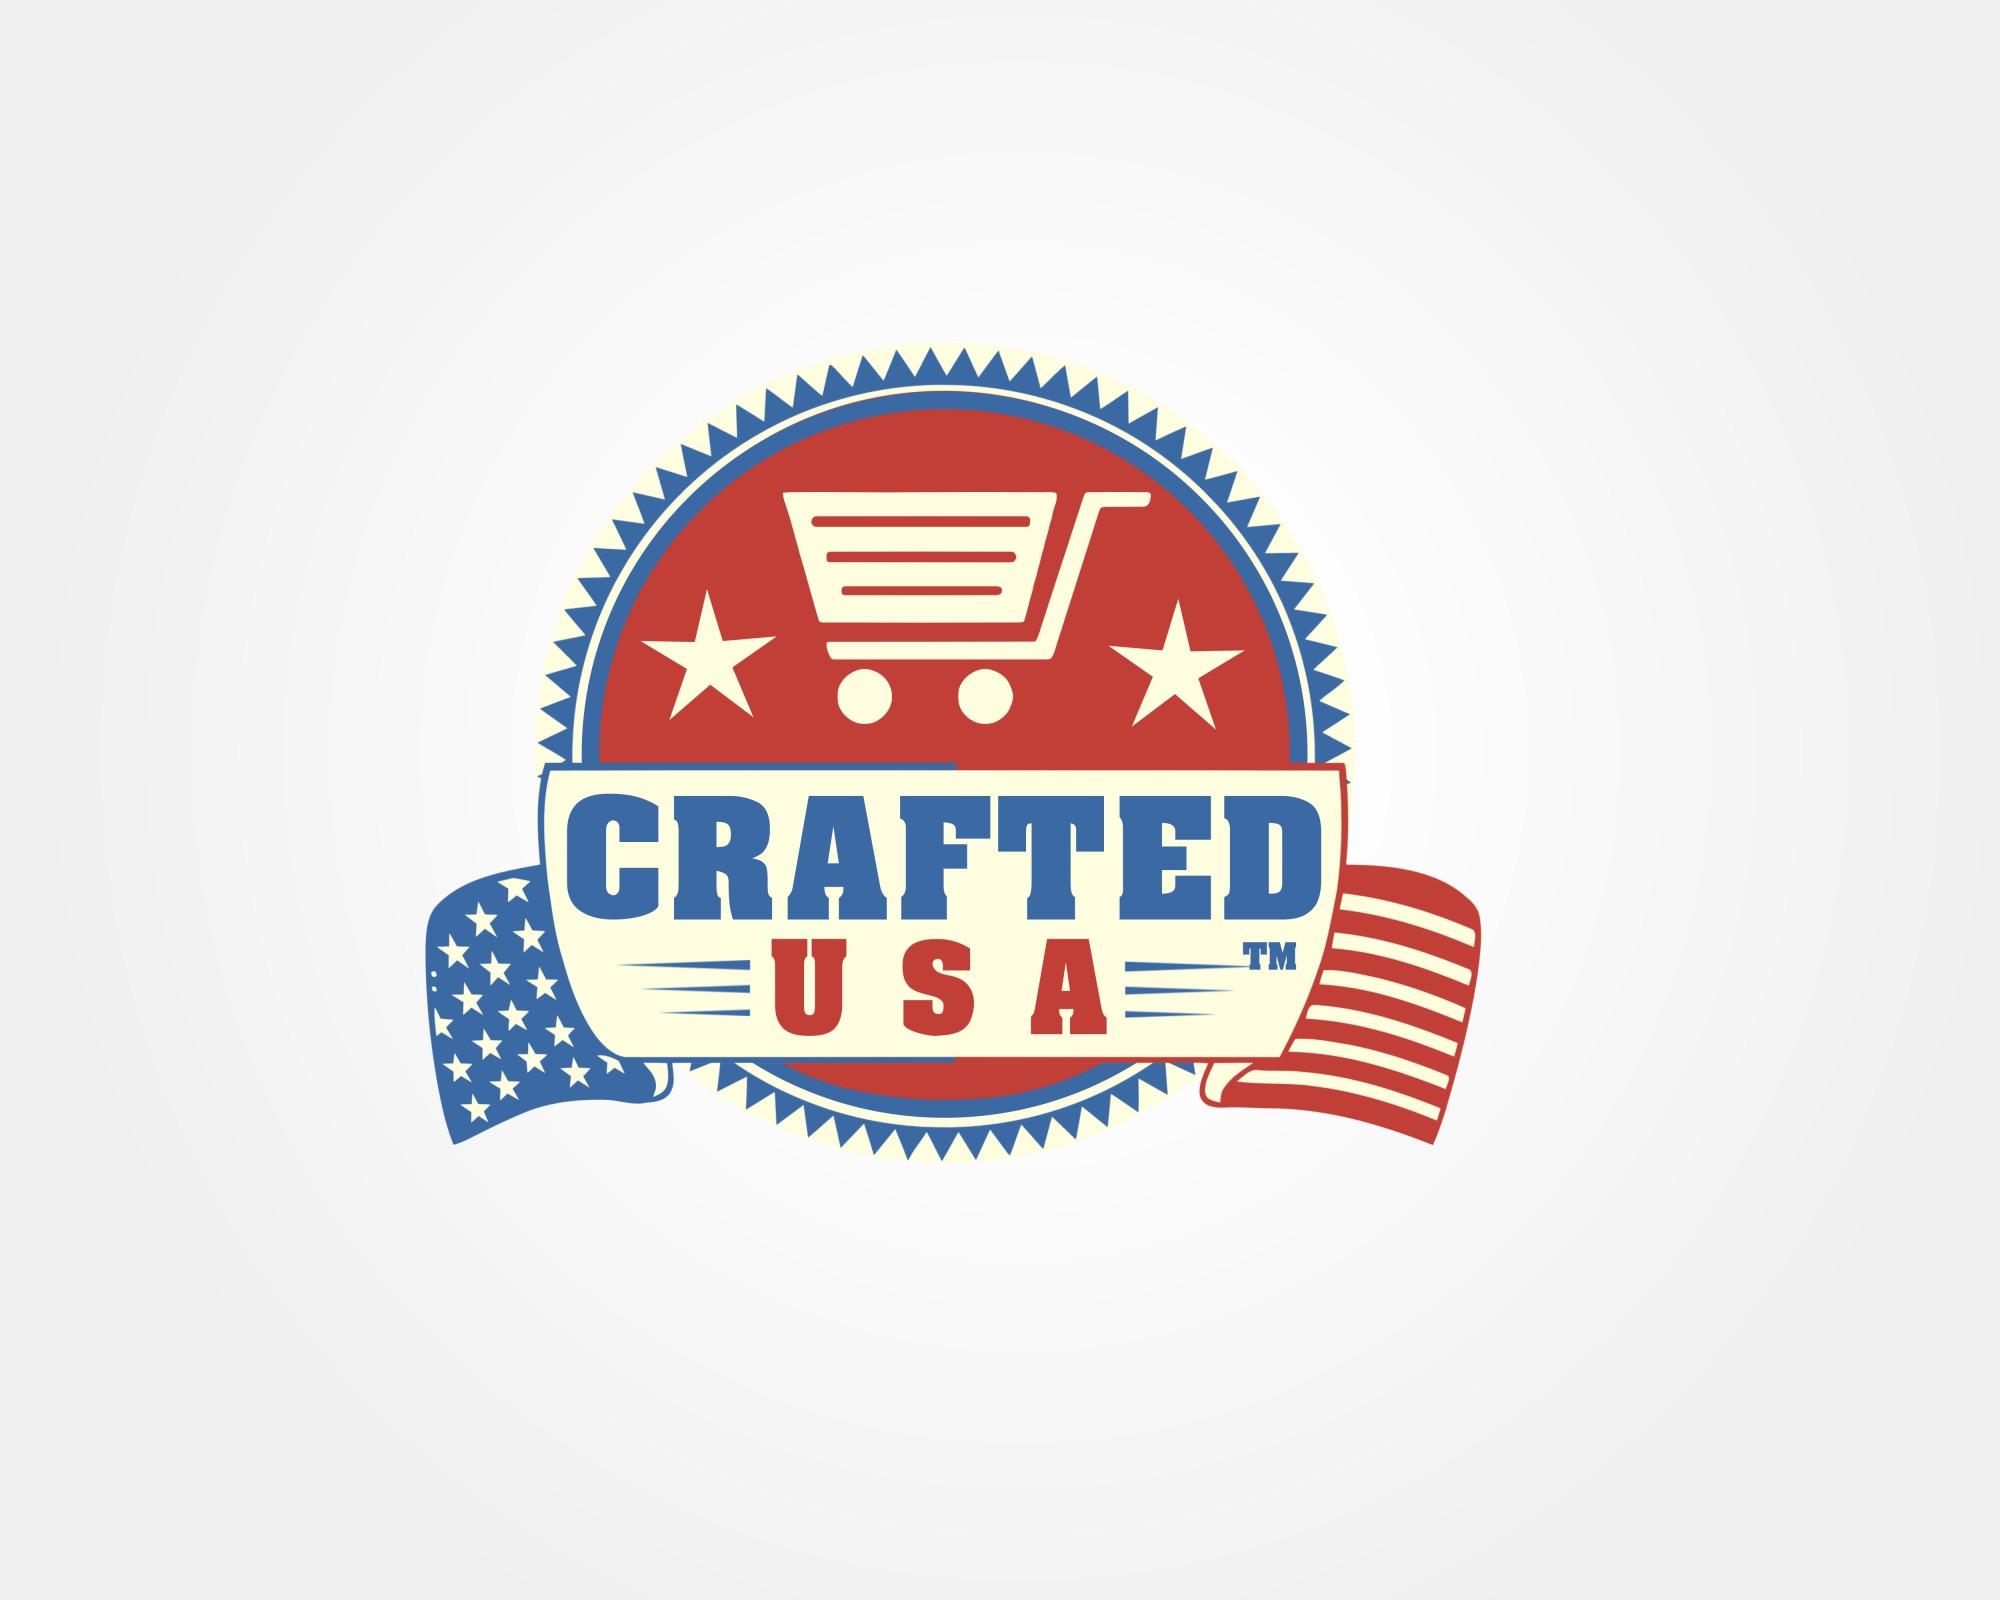 Crafted USA logo enhancement